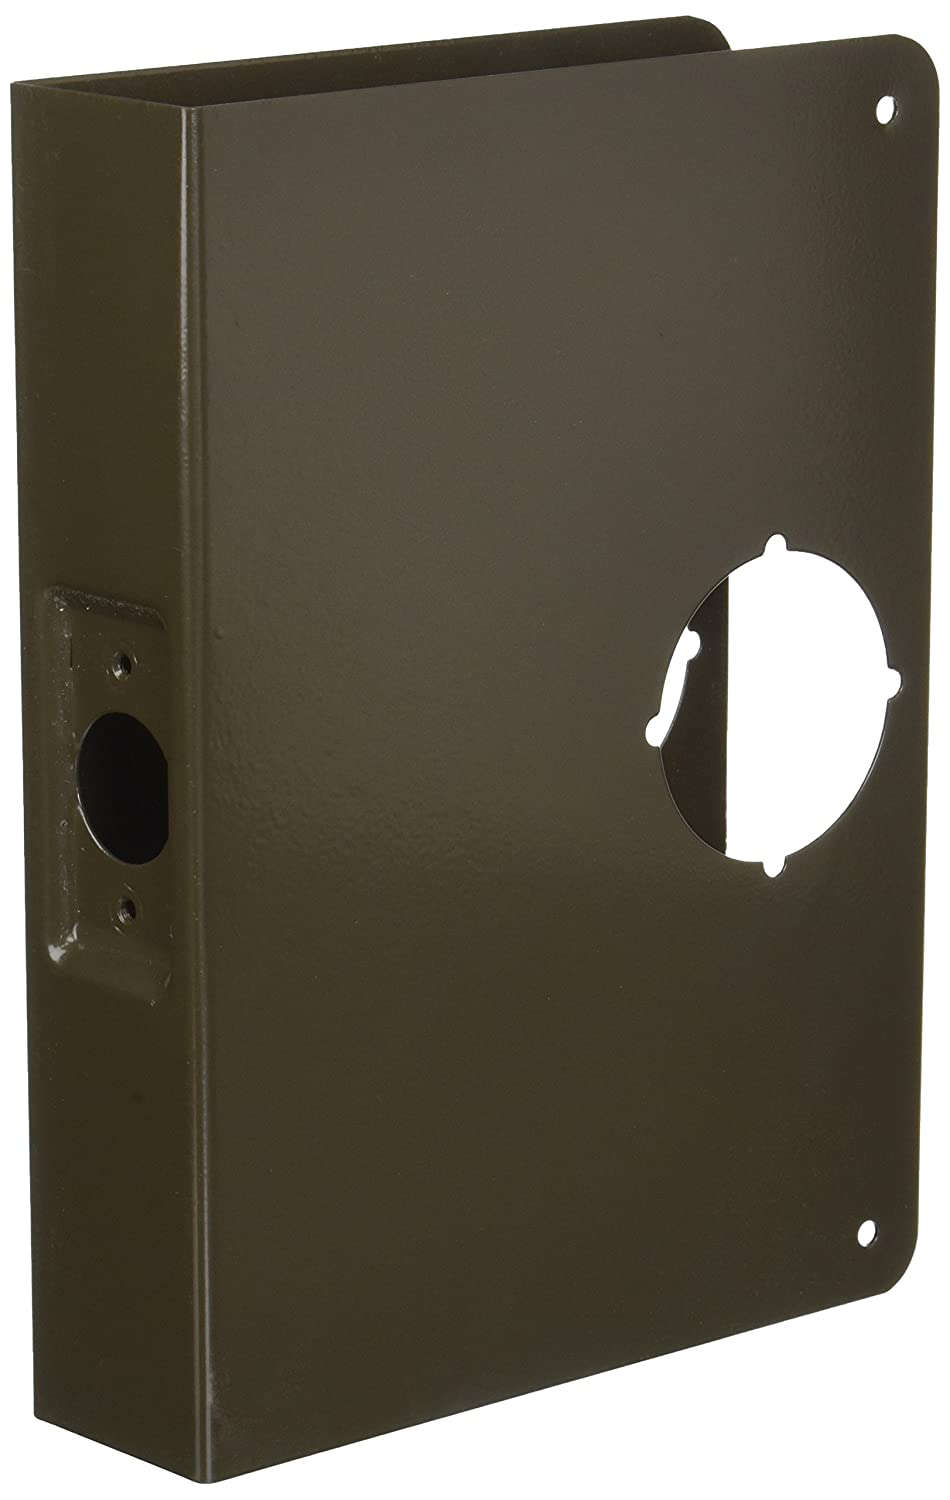 6-1//2 Width x 9 Height Satin Bronze Finish Don-Jo 55-CW 22 Gauge Stainless Steel Mortise Lock Wrap-Around Plate